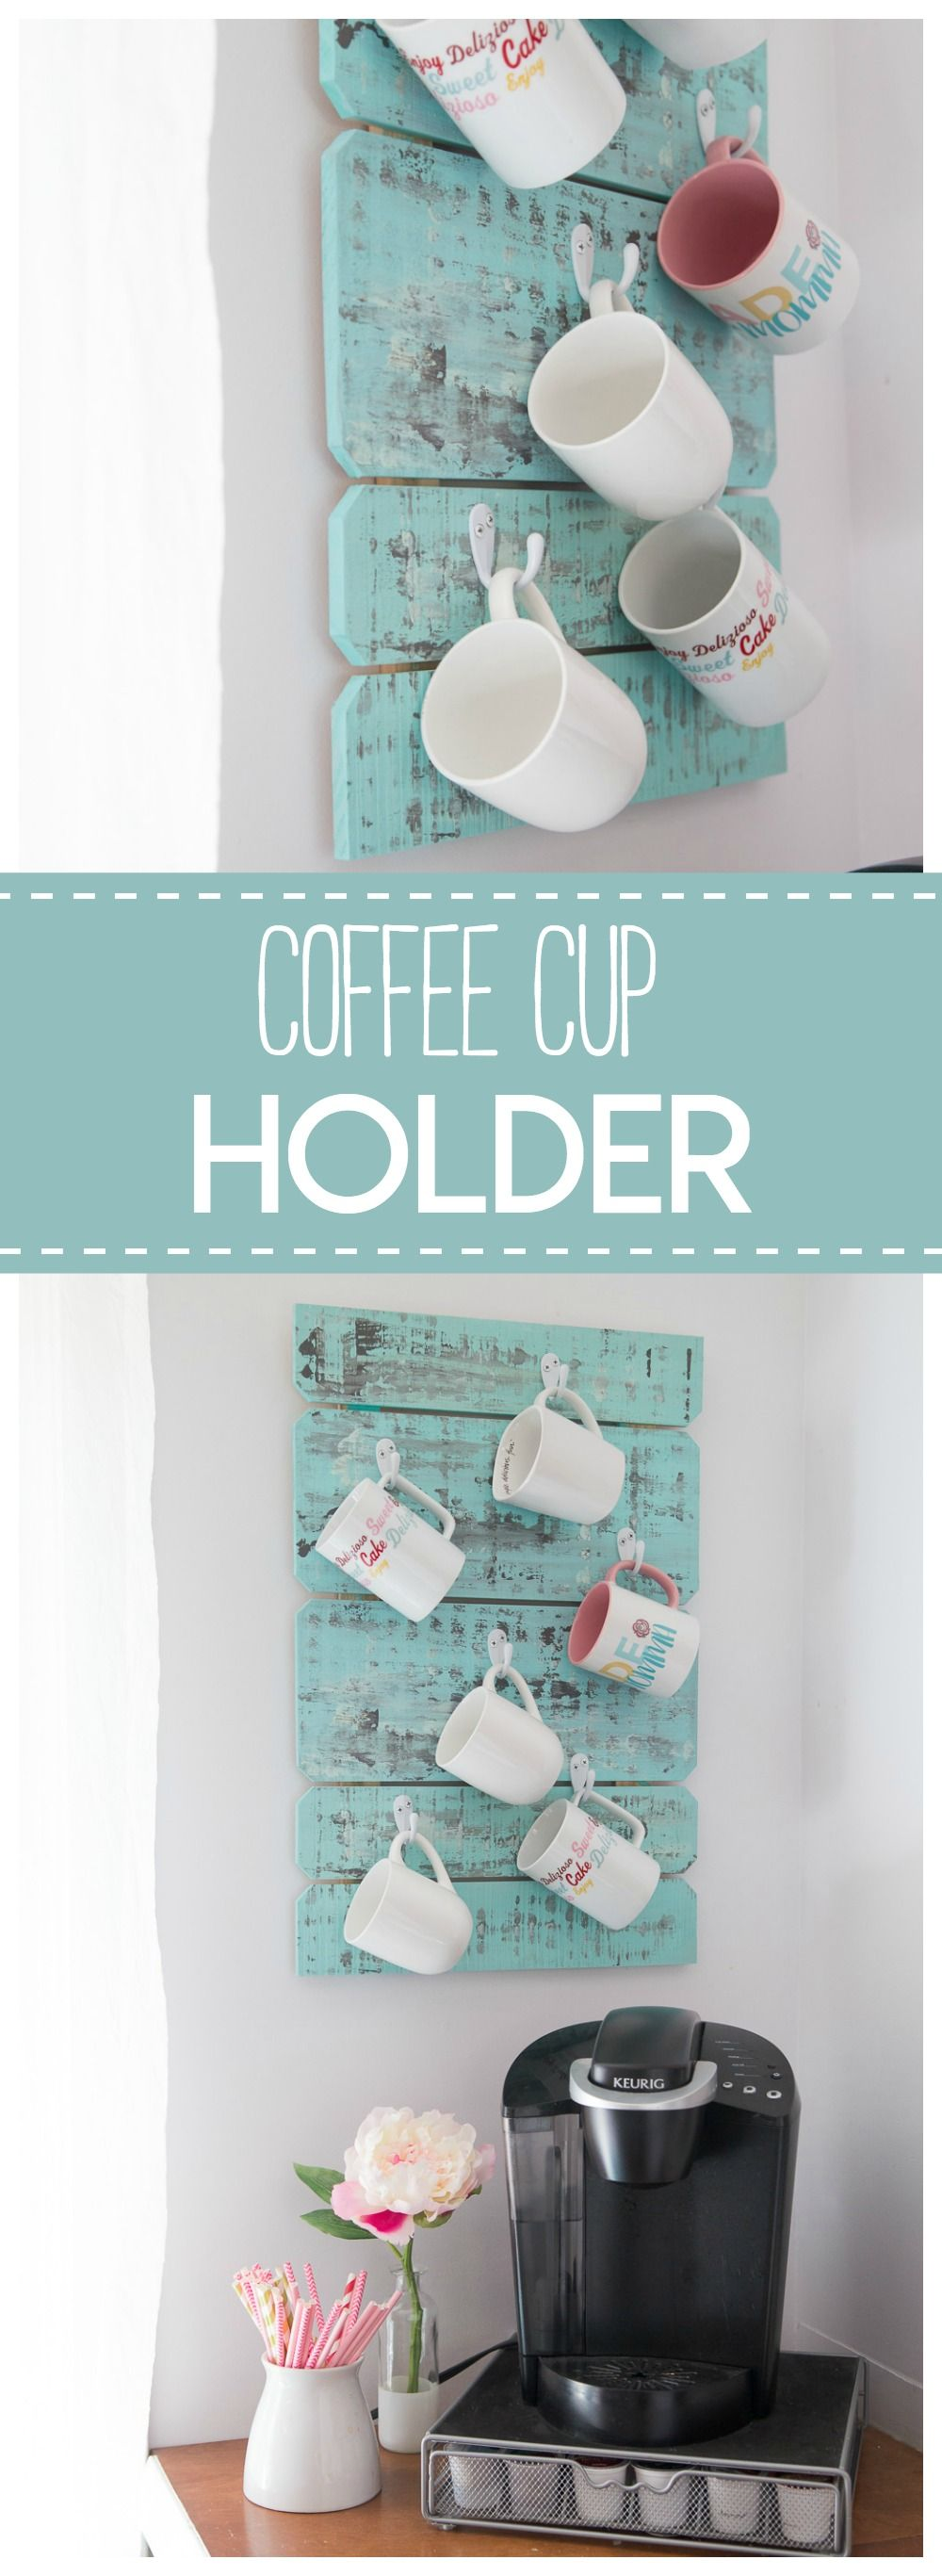 This coffee cup holder is a simple & pretty diy project to organize your  coffee mugs